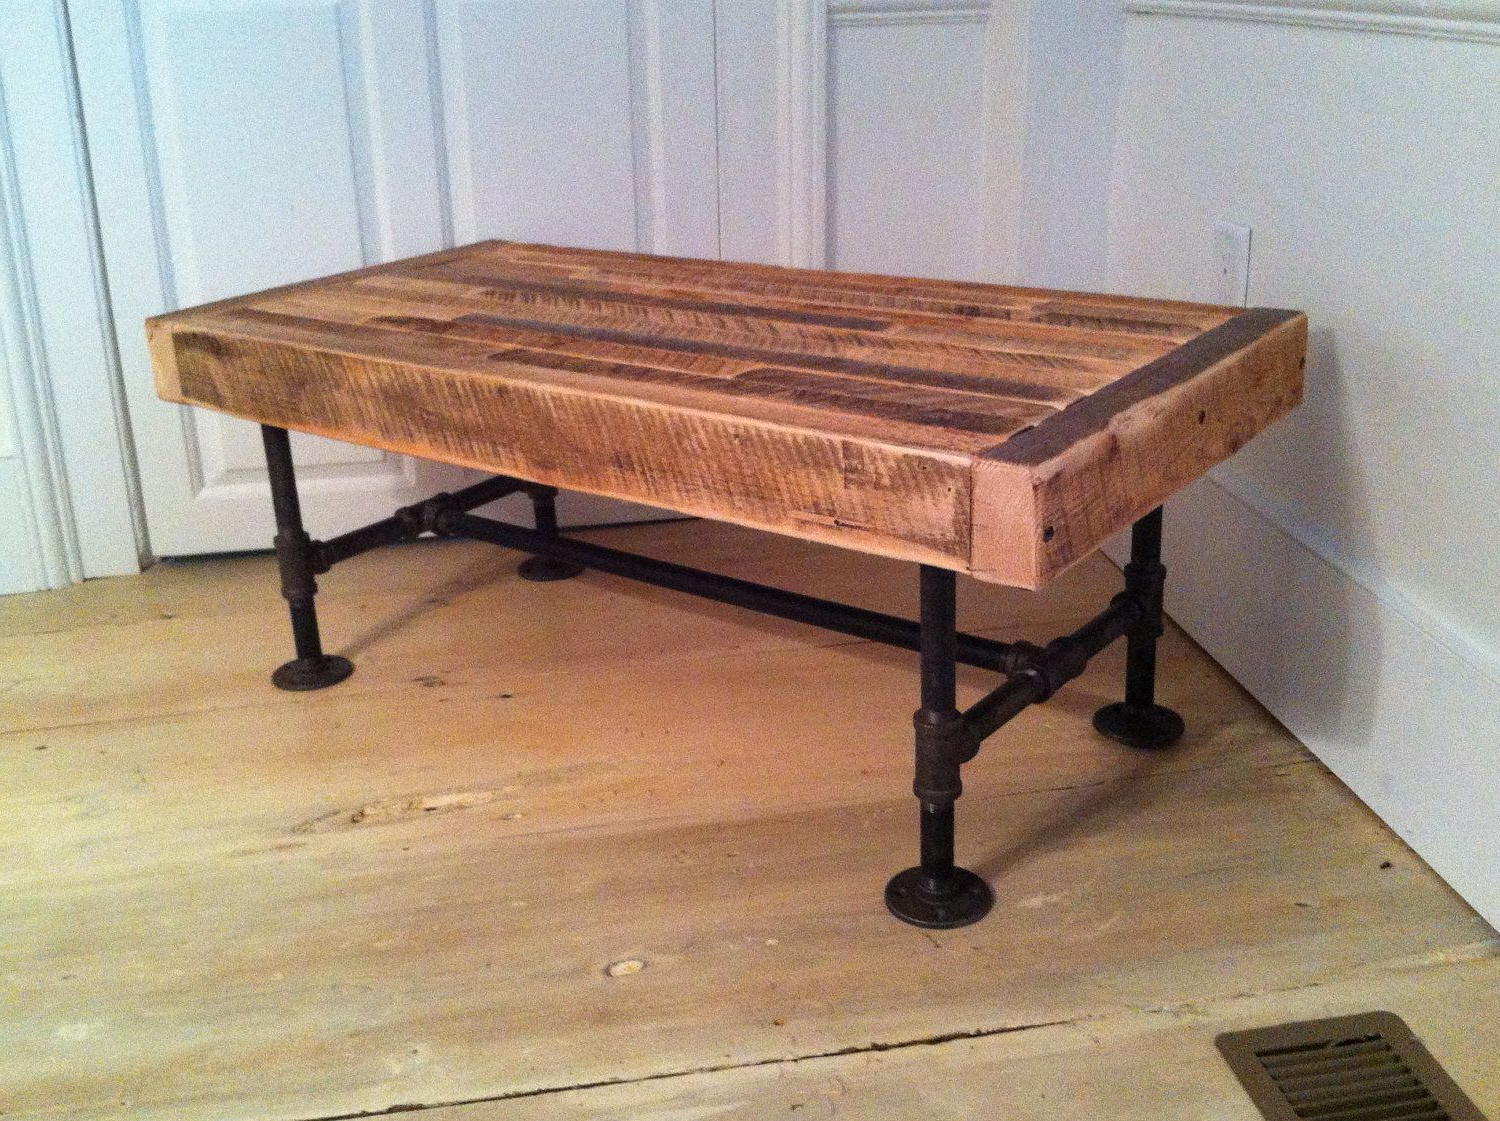 Pine Metal Tube Coffee Tables Inside 2018 Industrial Wood & Steel Coffee Table, Reclaimed Barnwood With (View 12 of 20)